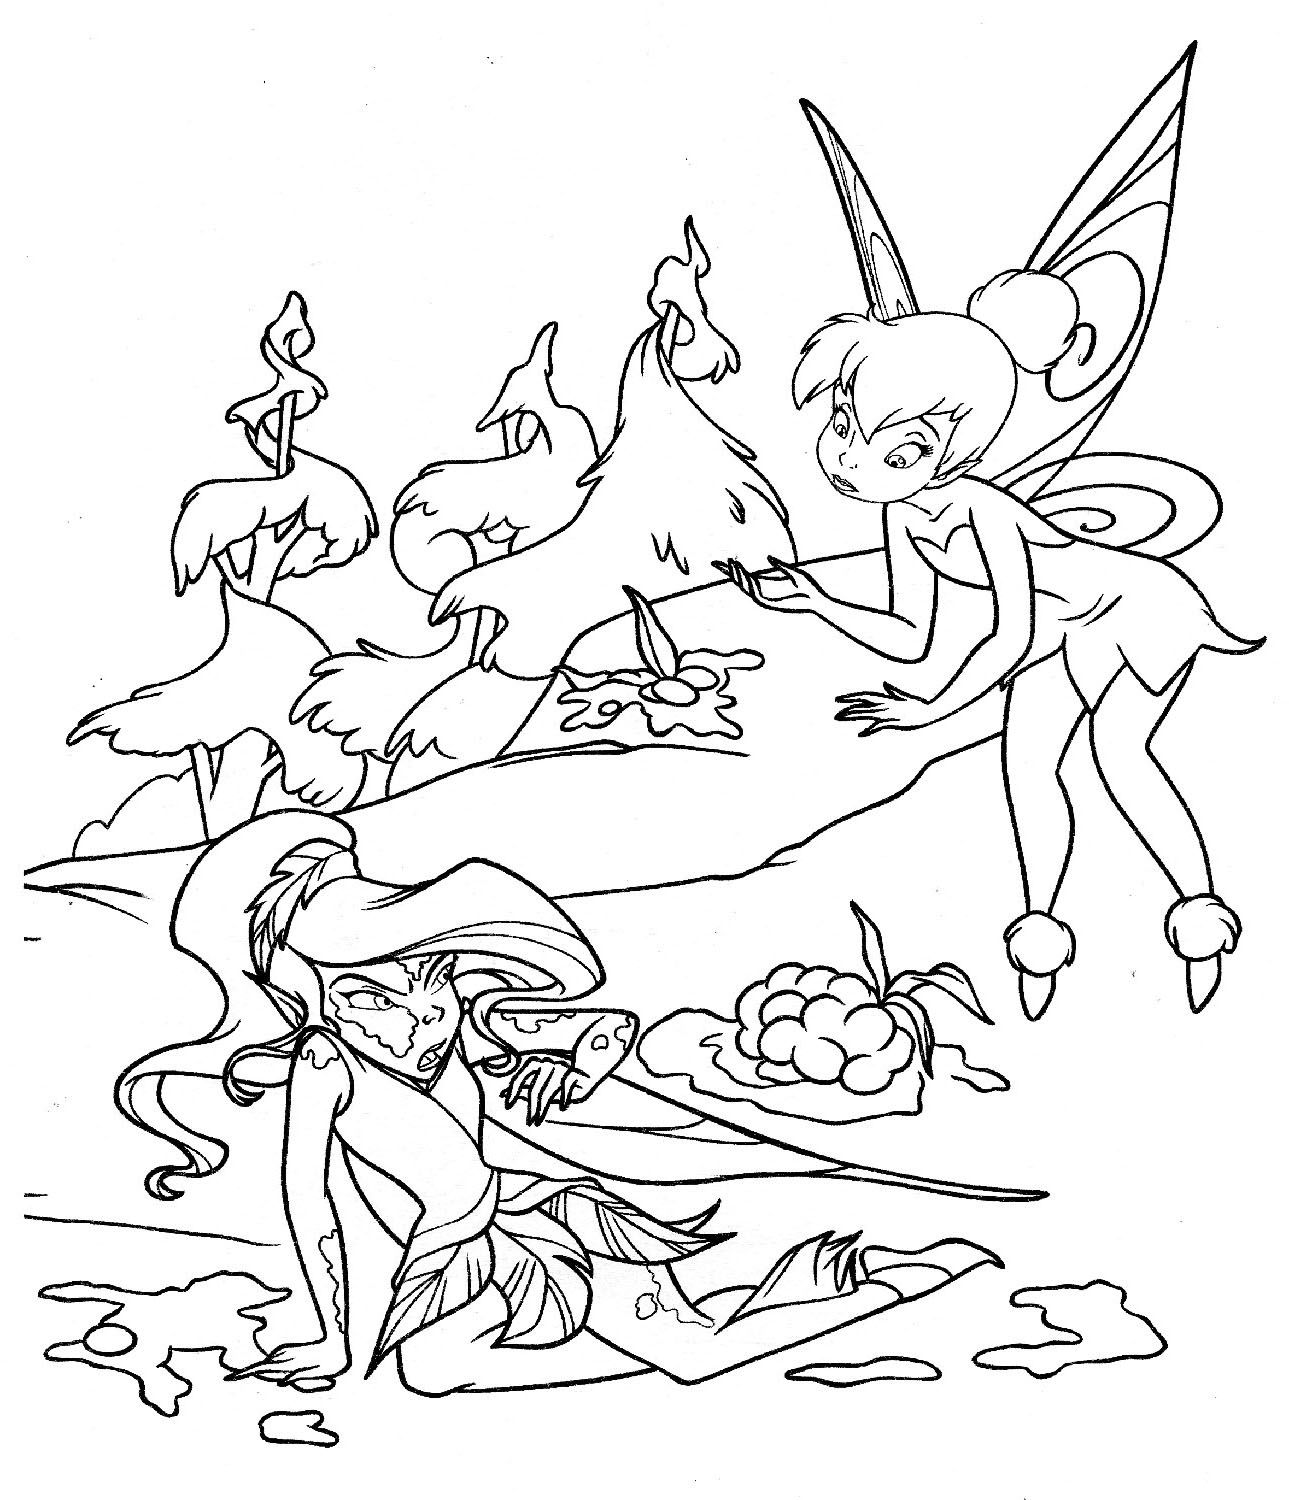 tinkerbell for coloring 18 tinkerbell coloring pages printable pdfs print color coloring for tinkerbell